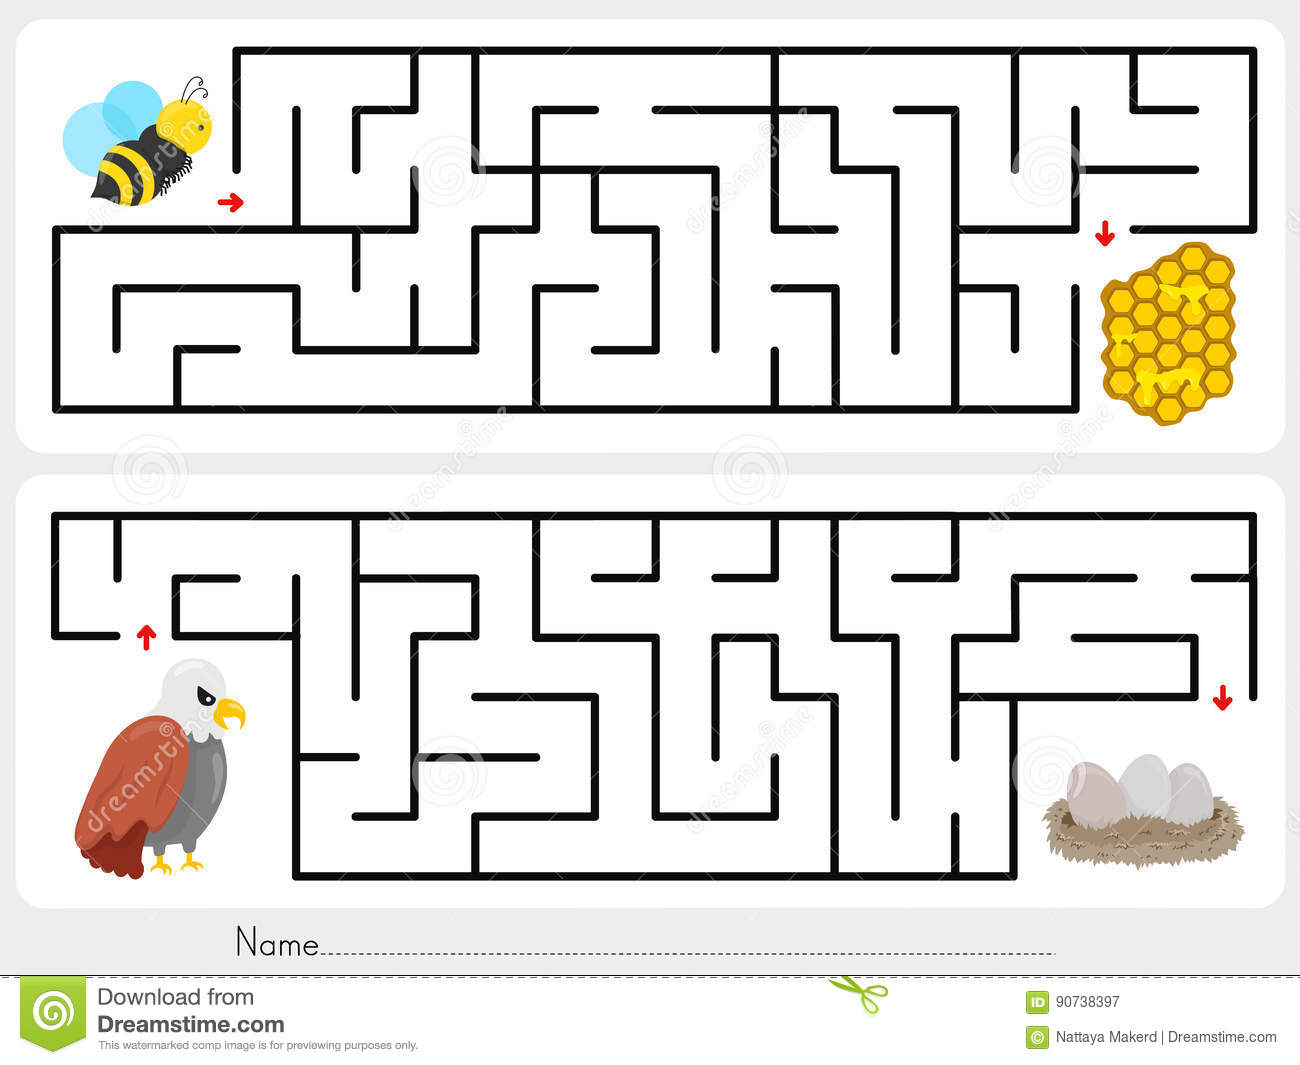 Maze Game Help The Bee To Find The Honeycomb And Help The